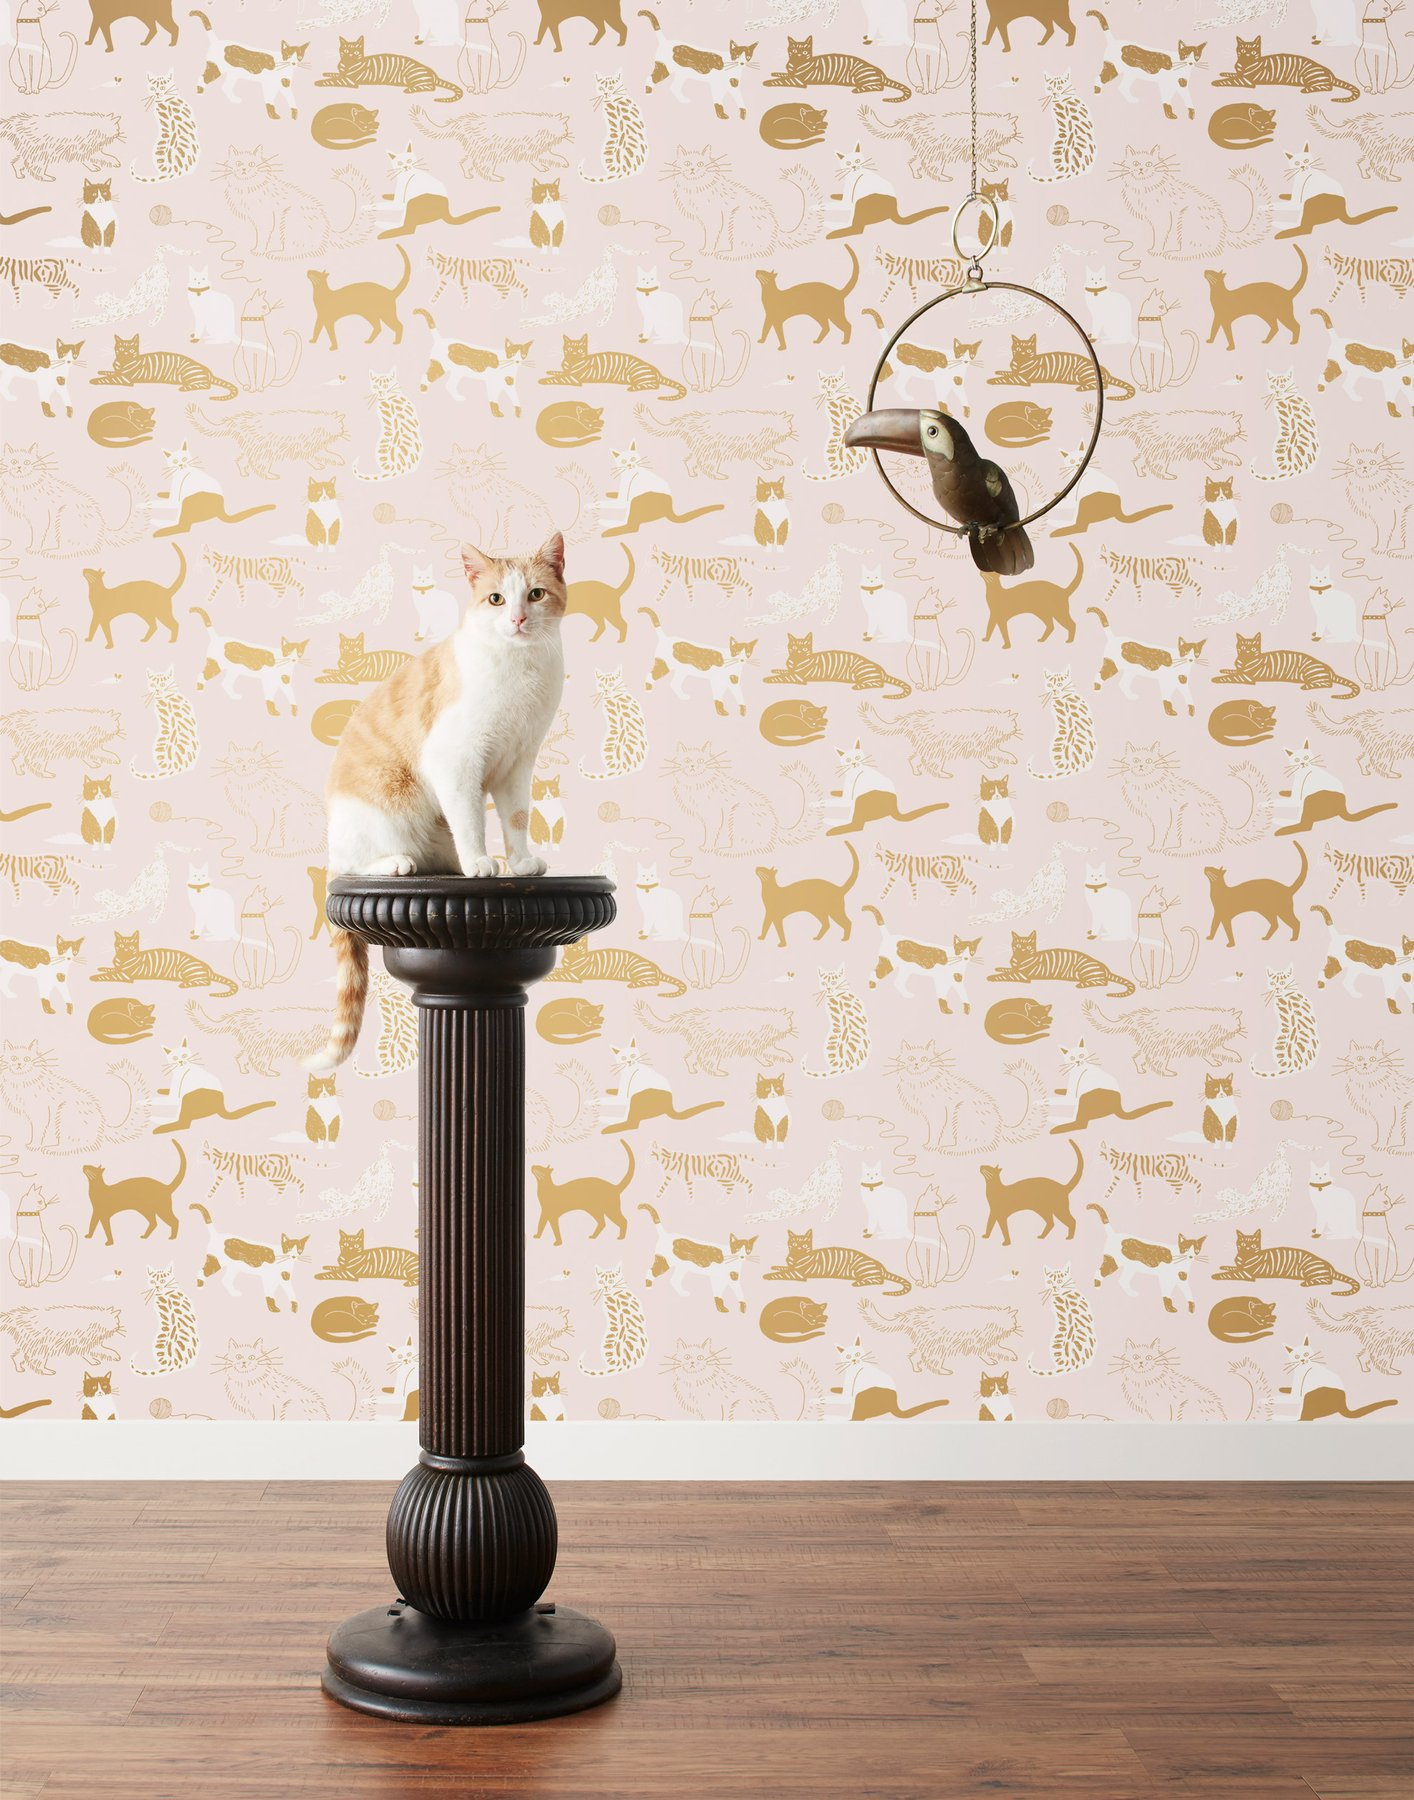 Cats Meow Blush Wallpaper Hygge West 1414x1800